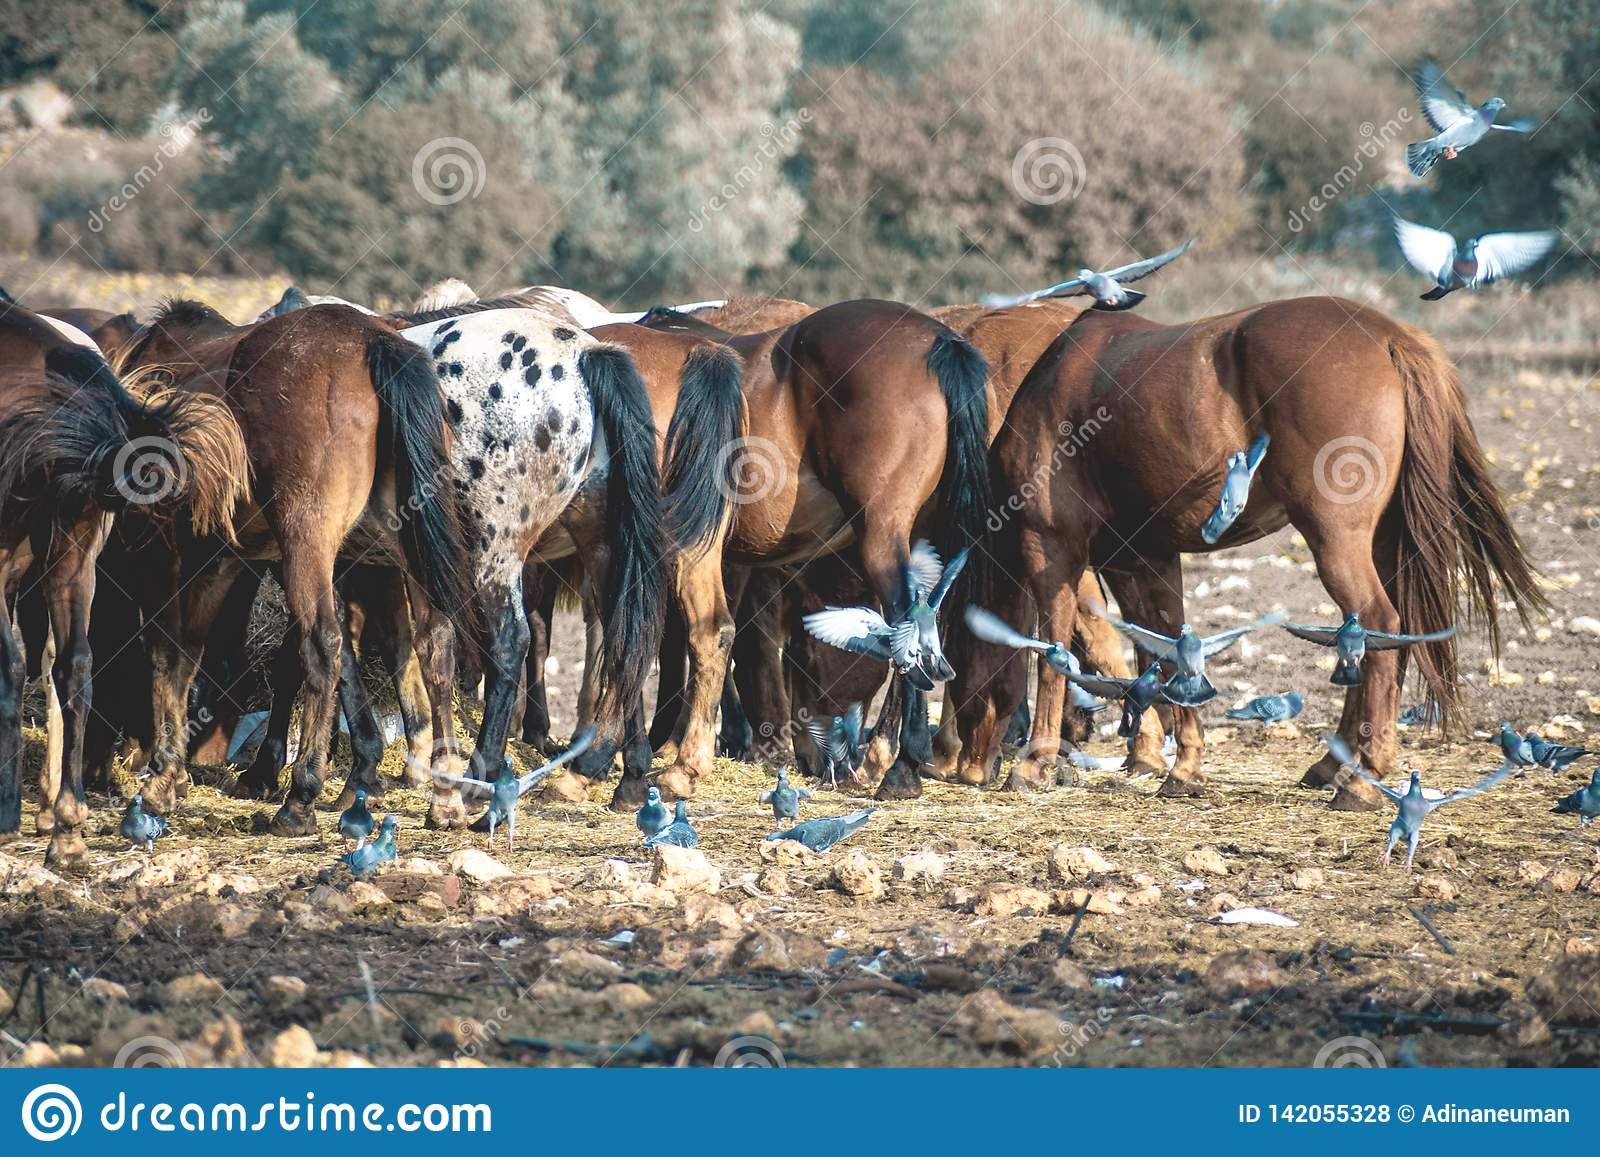 Group of horses in a field with flying pigeons